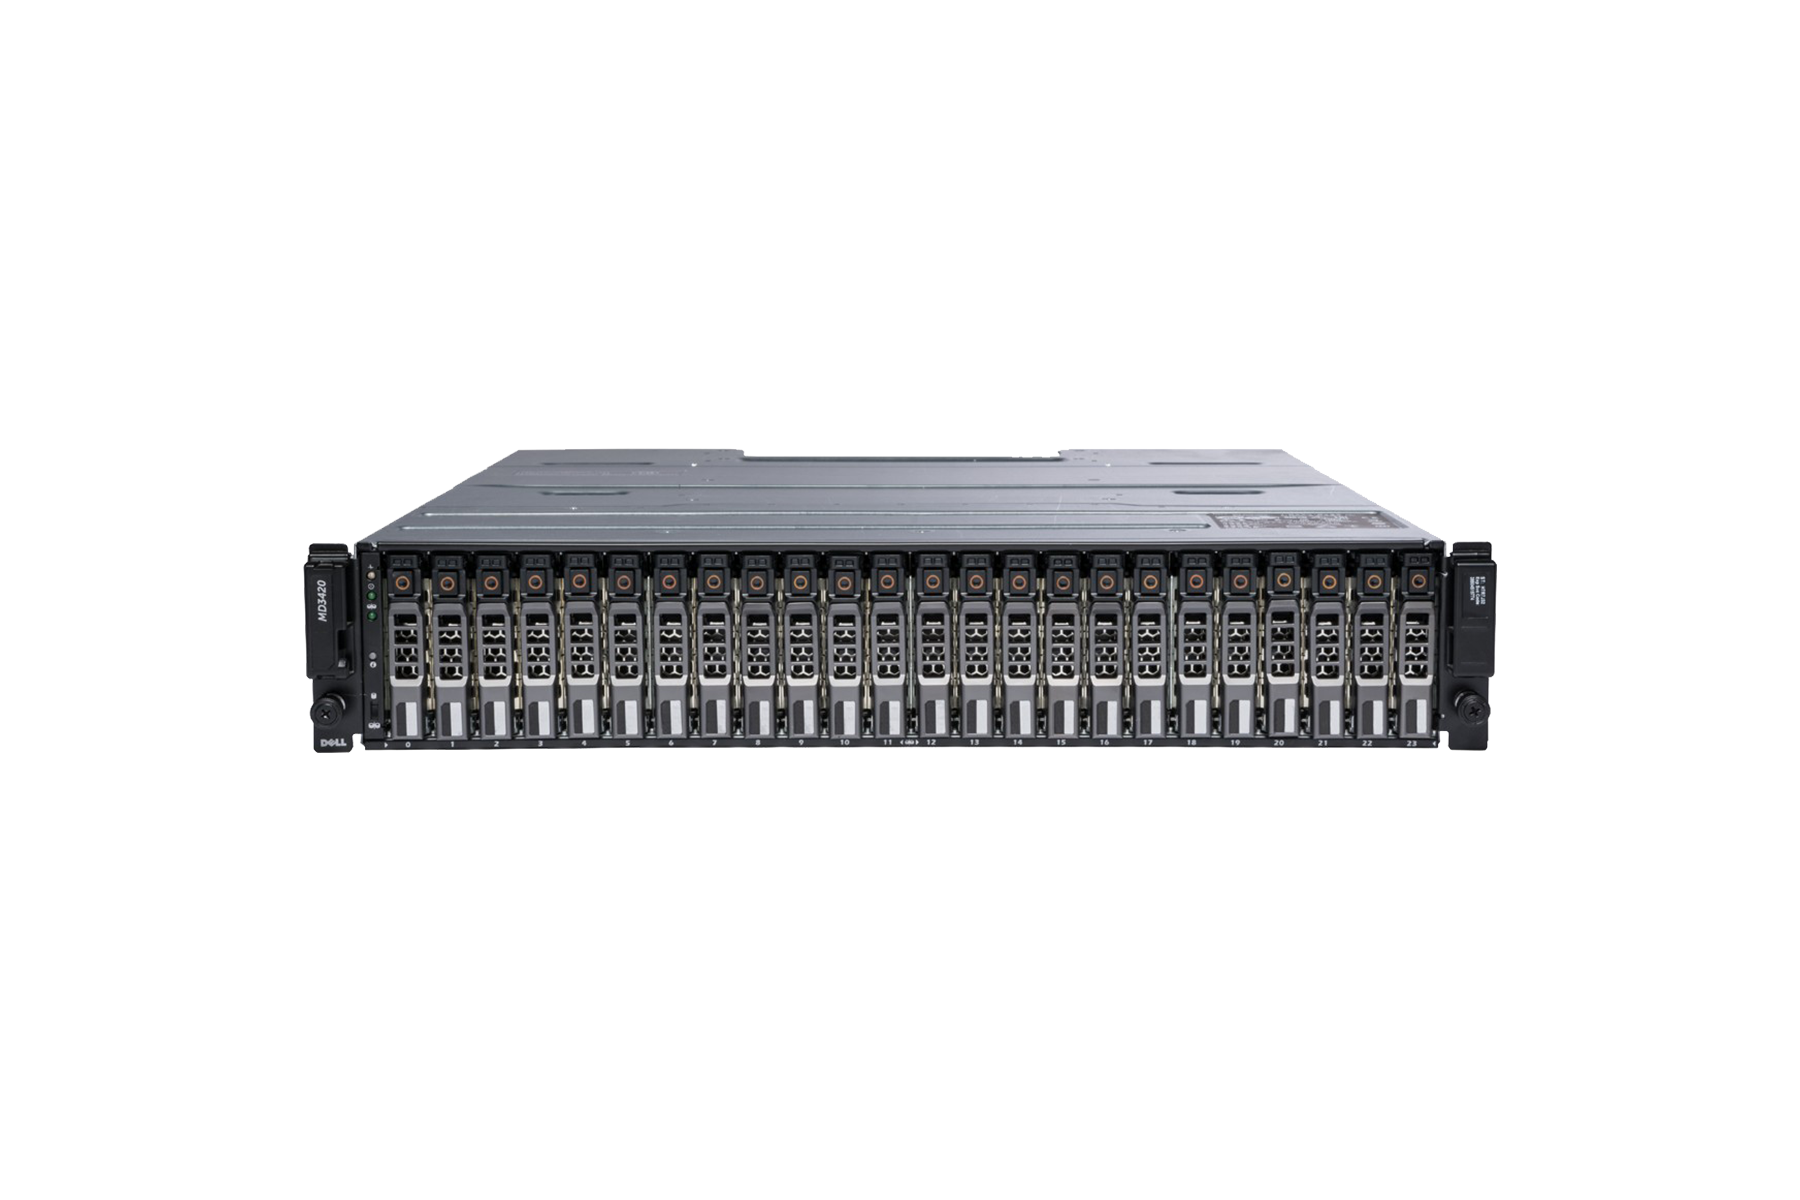 СХД Dell PowerVault MD3420 - 2xSAS 12Gb Dual Controller/4G Cache/No HDD (up to 24x2.5)/ 2x600W